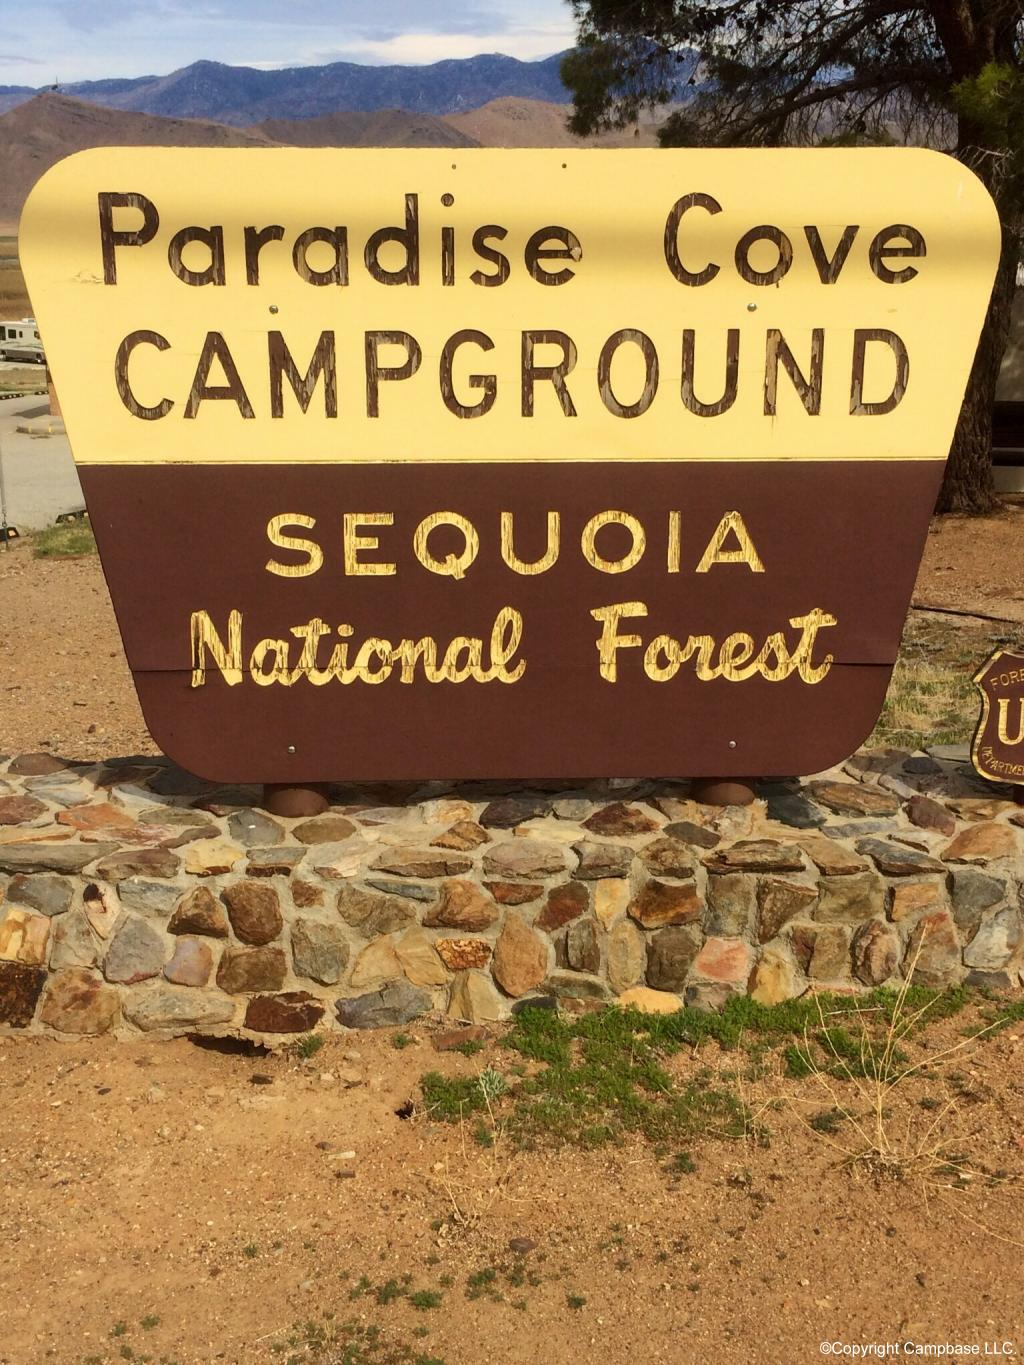 Paradise cove campground snf lake isabella california for Fish cleaning station near me